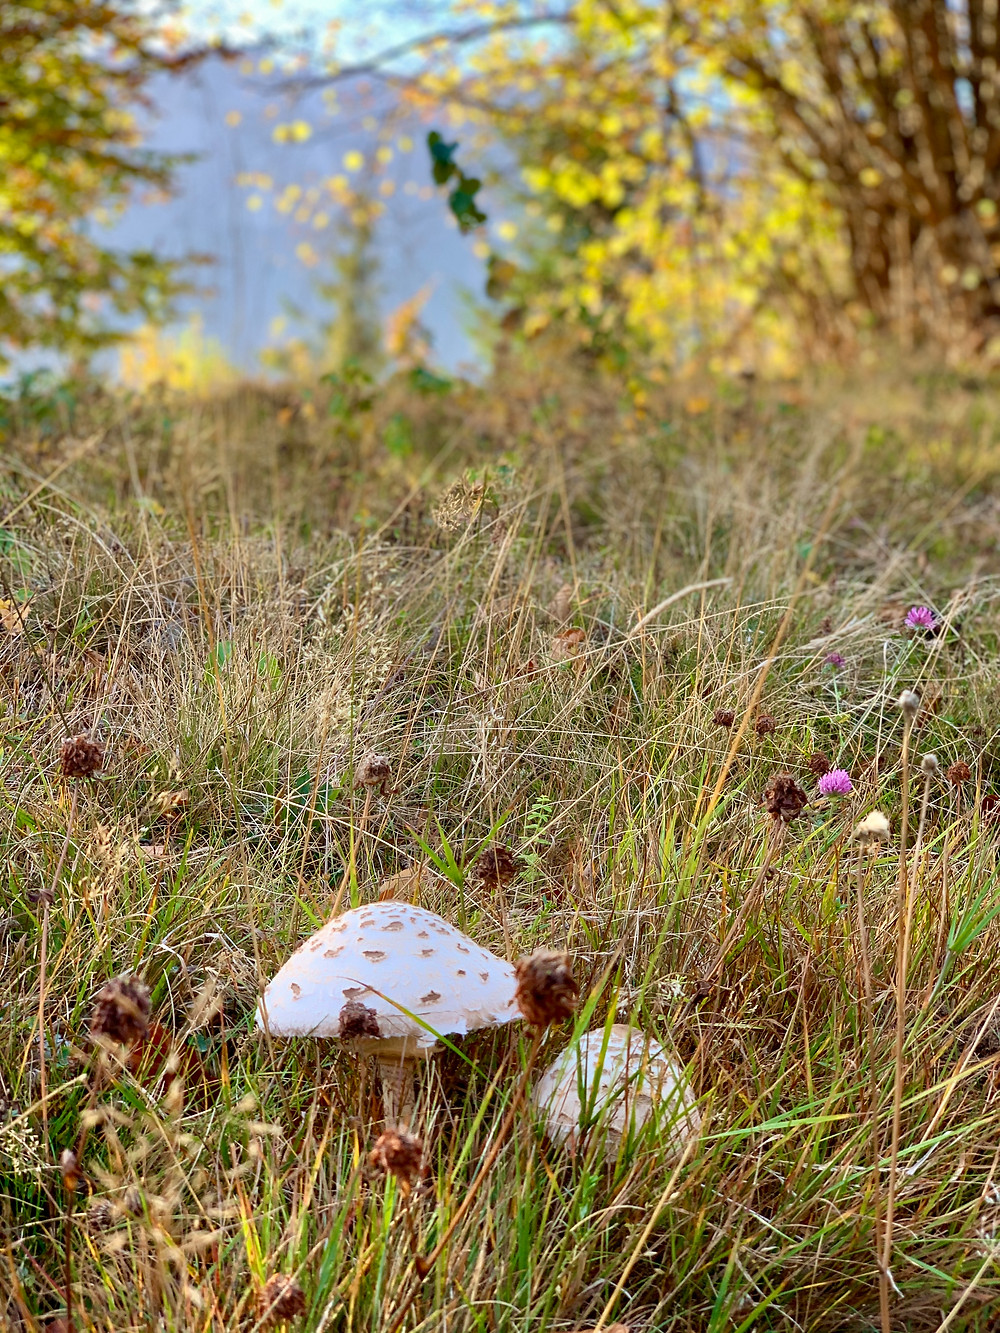 Delicious Parasol Mushrooms